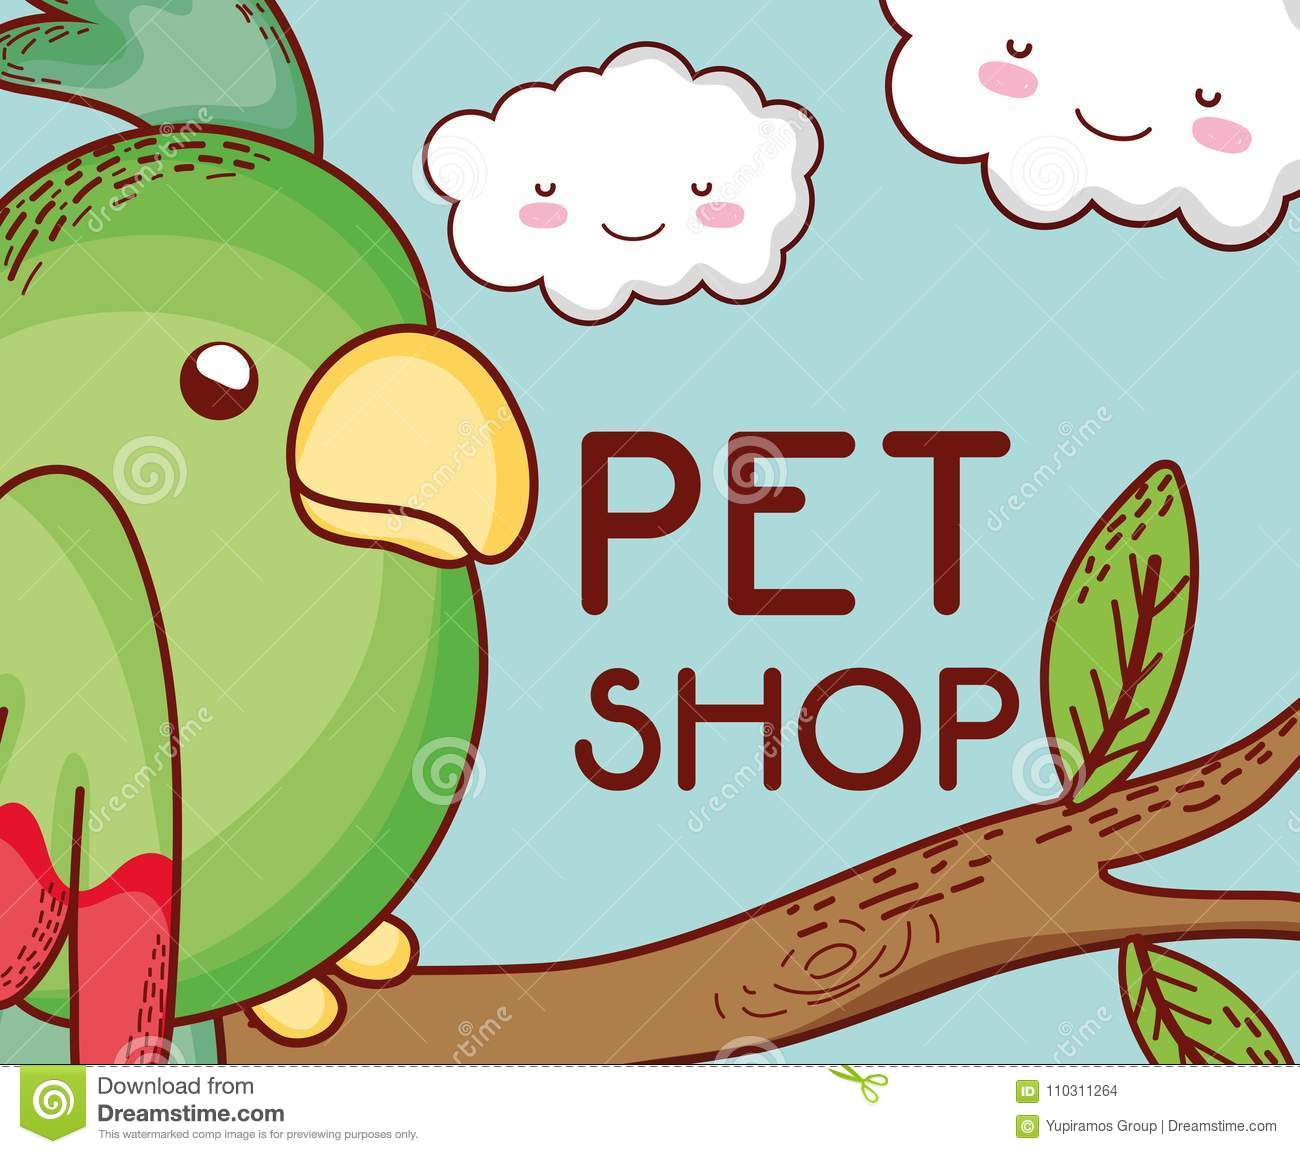 02eecc1ce Parrot on tree branch pet shop vector illustration graphic design